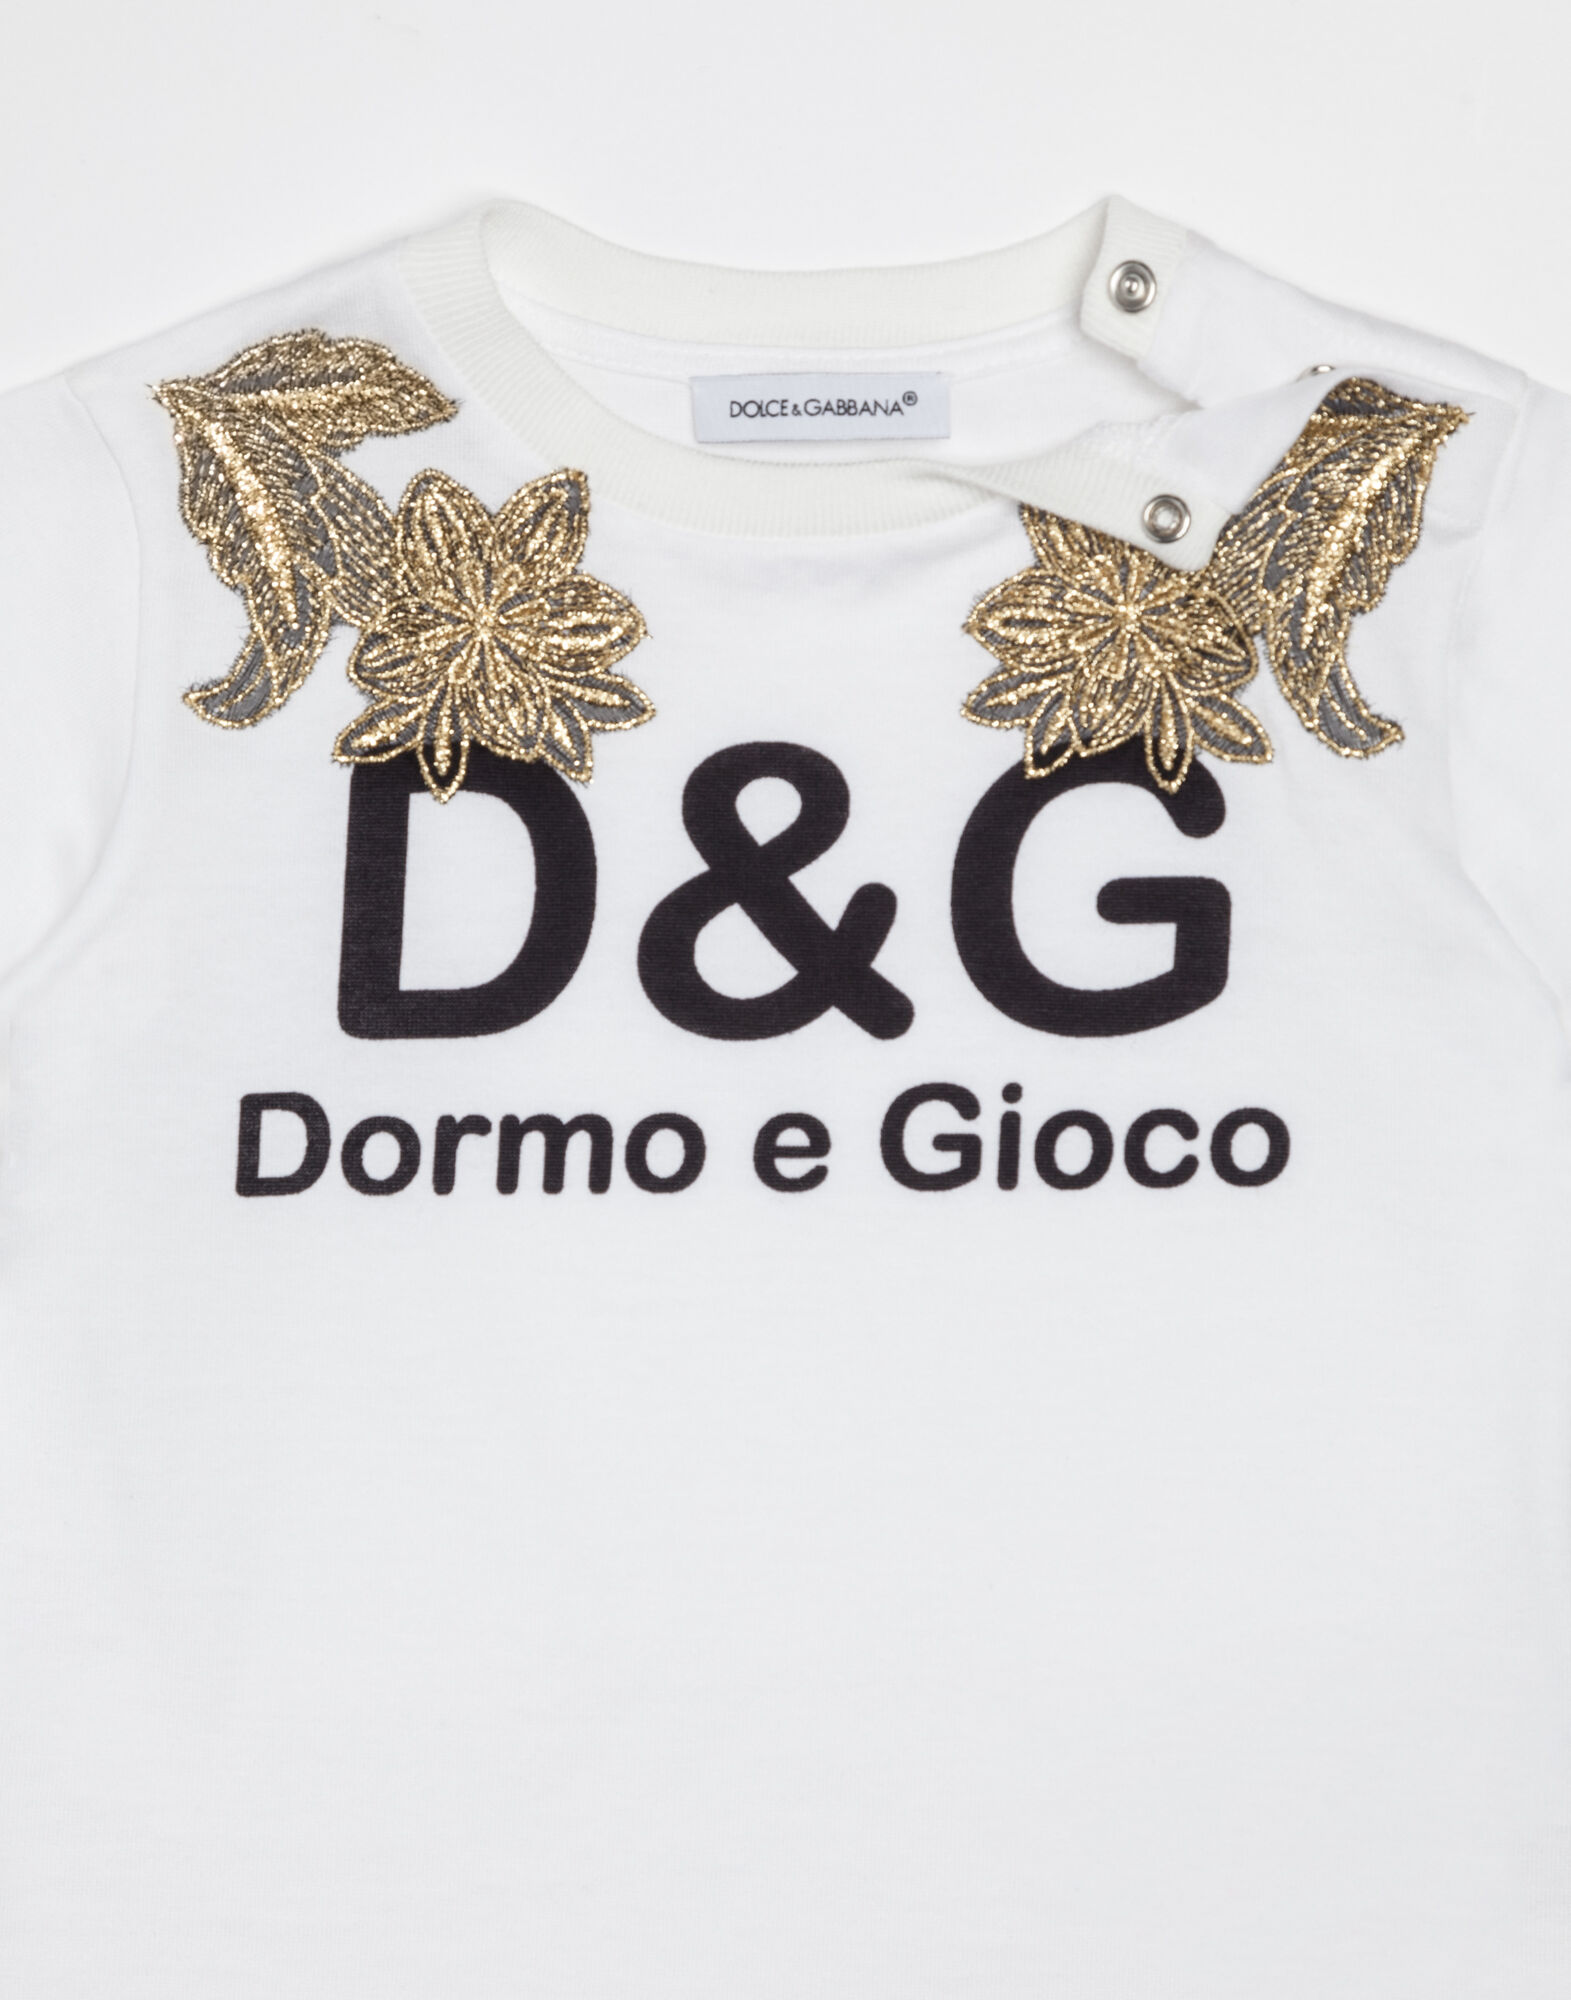 T-SHIRT WITH DOLCE&GABBANA PRINT